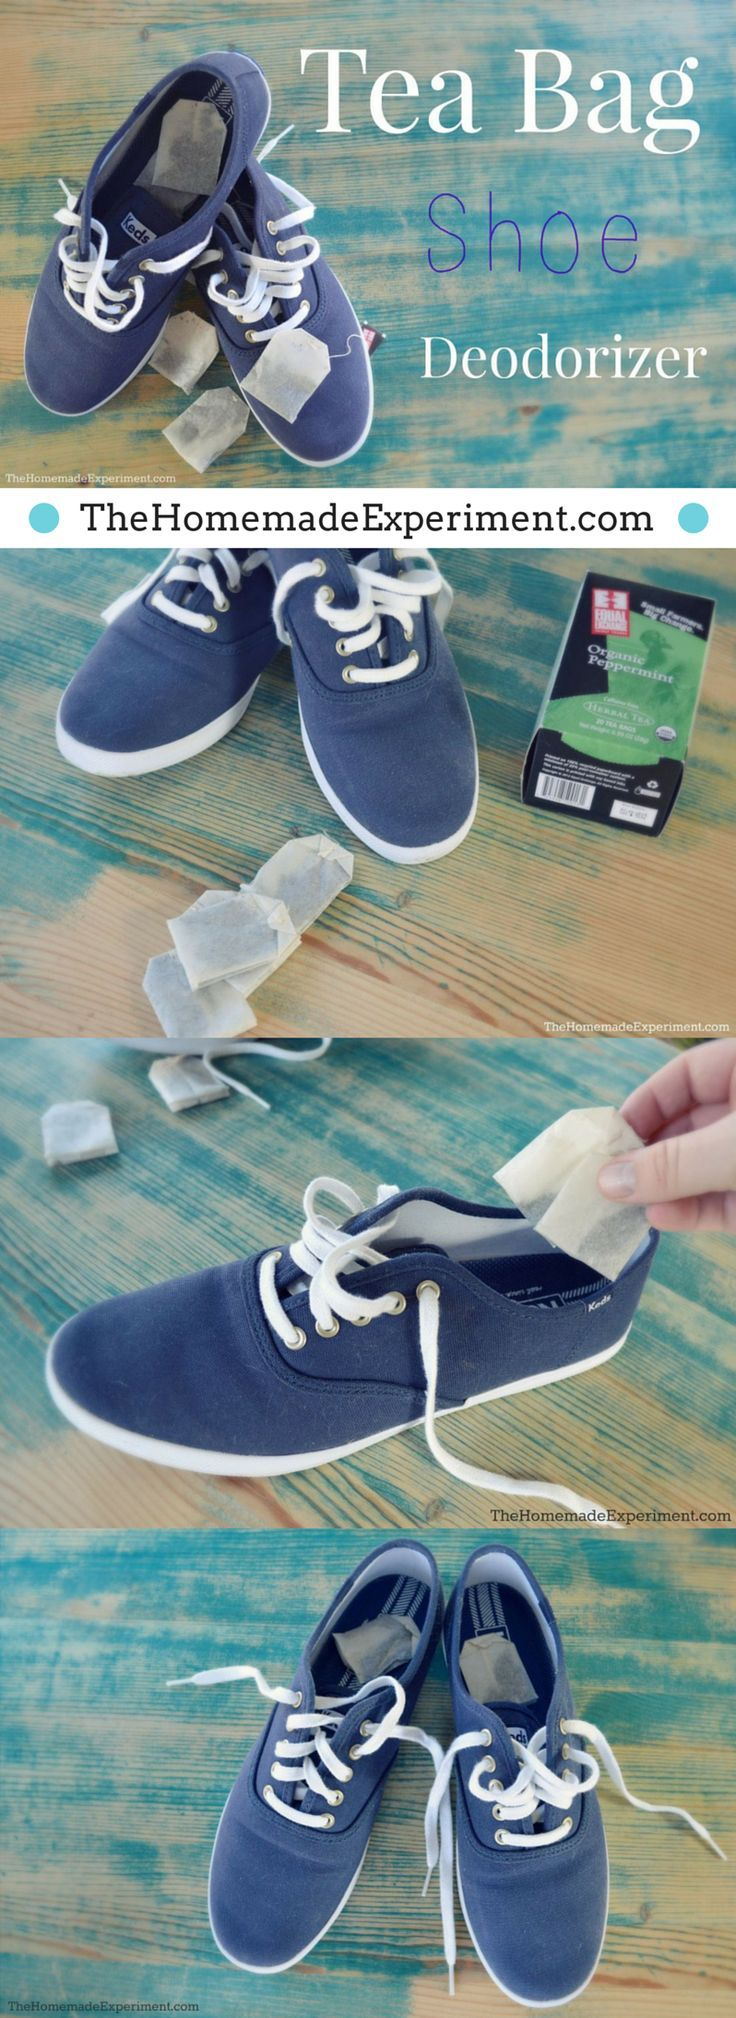 Use Tea Bags In Shoes To Remove Bad Odors Deodorize Shoes Homemade Shoes Tea Bags In Shoes